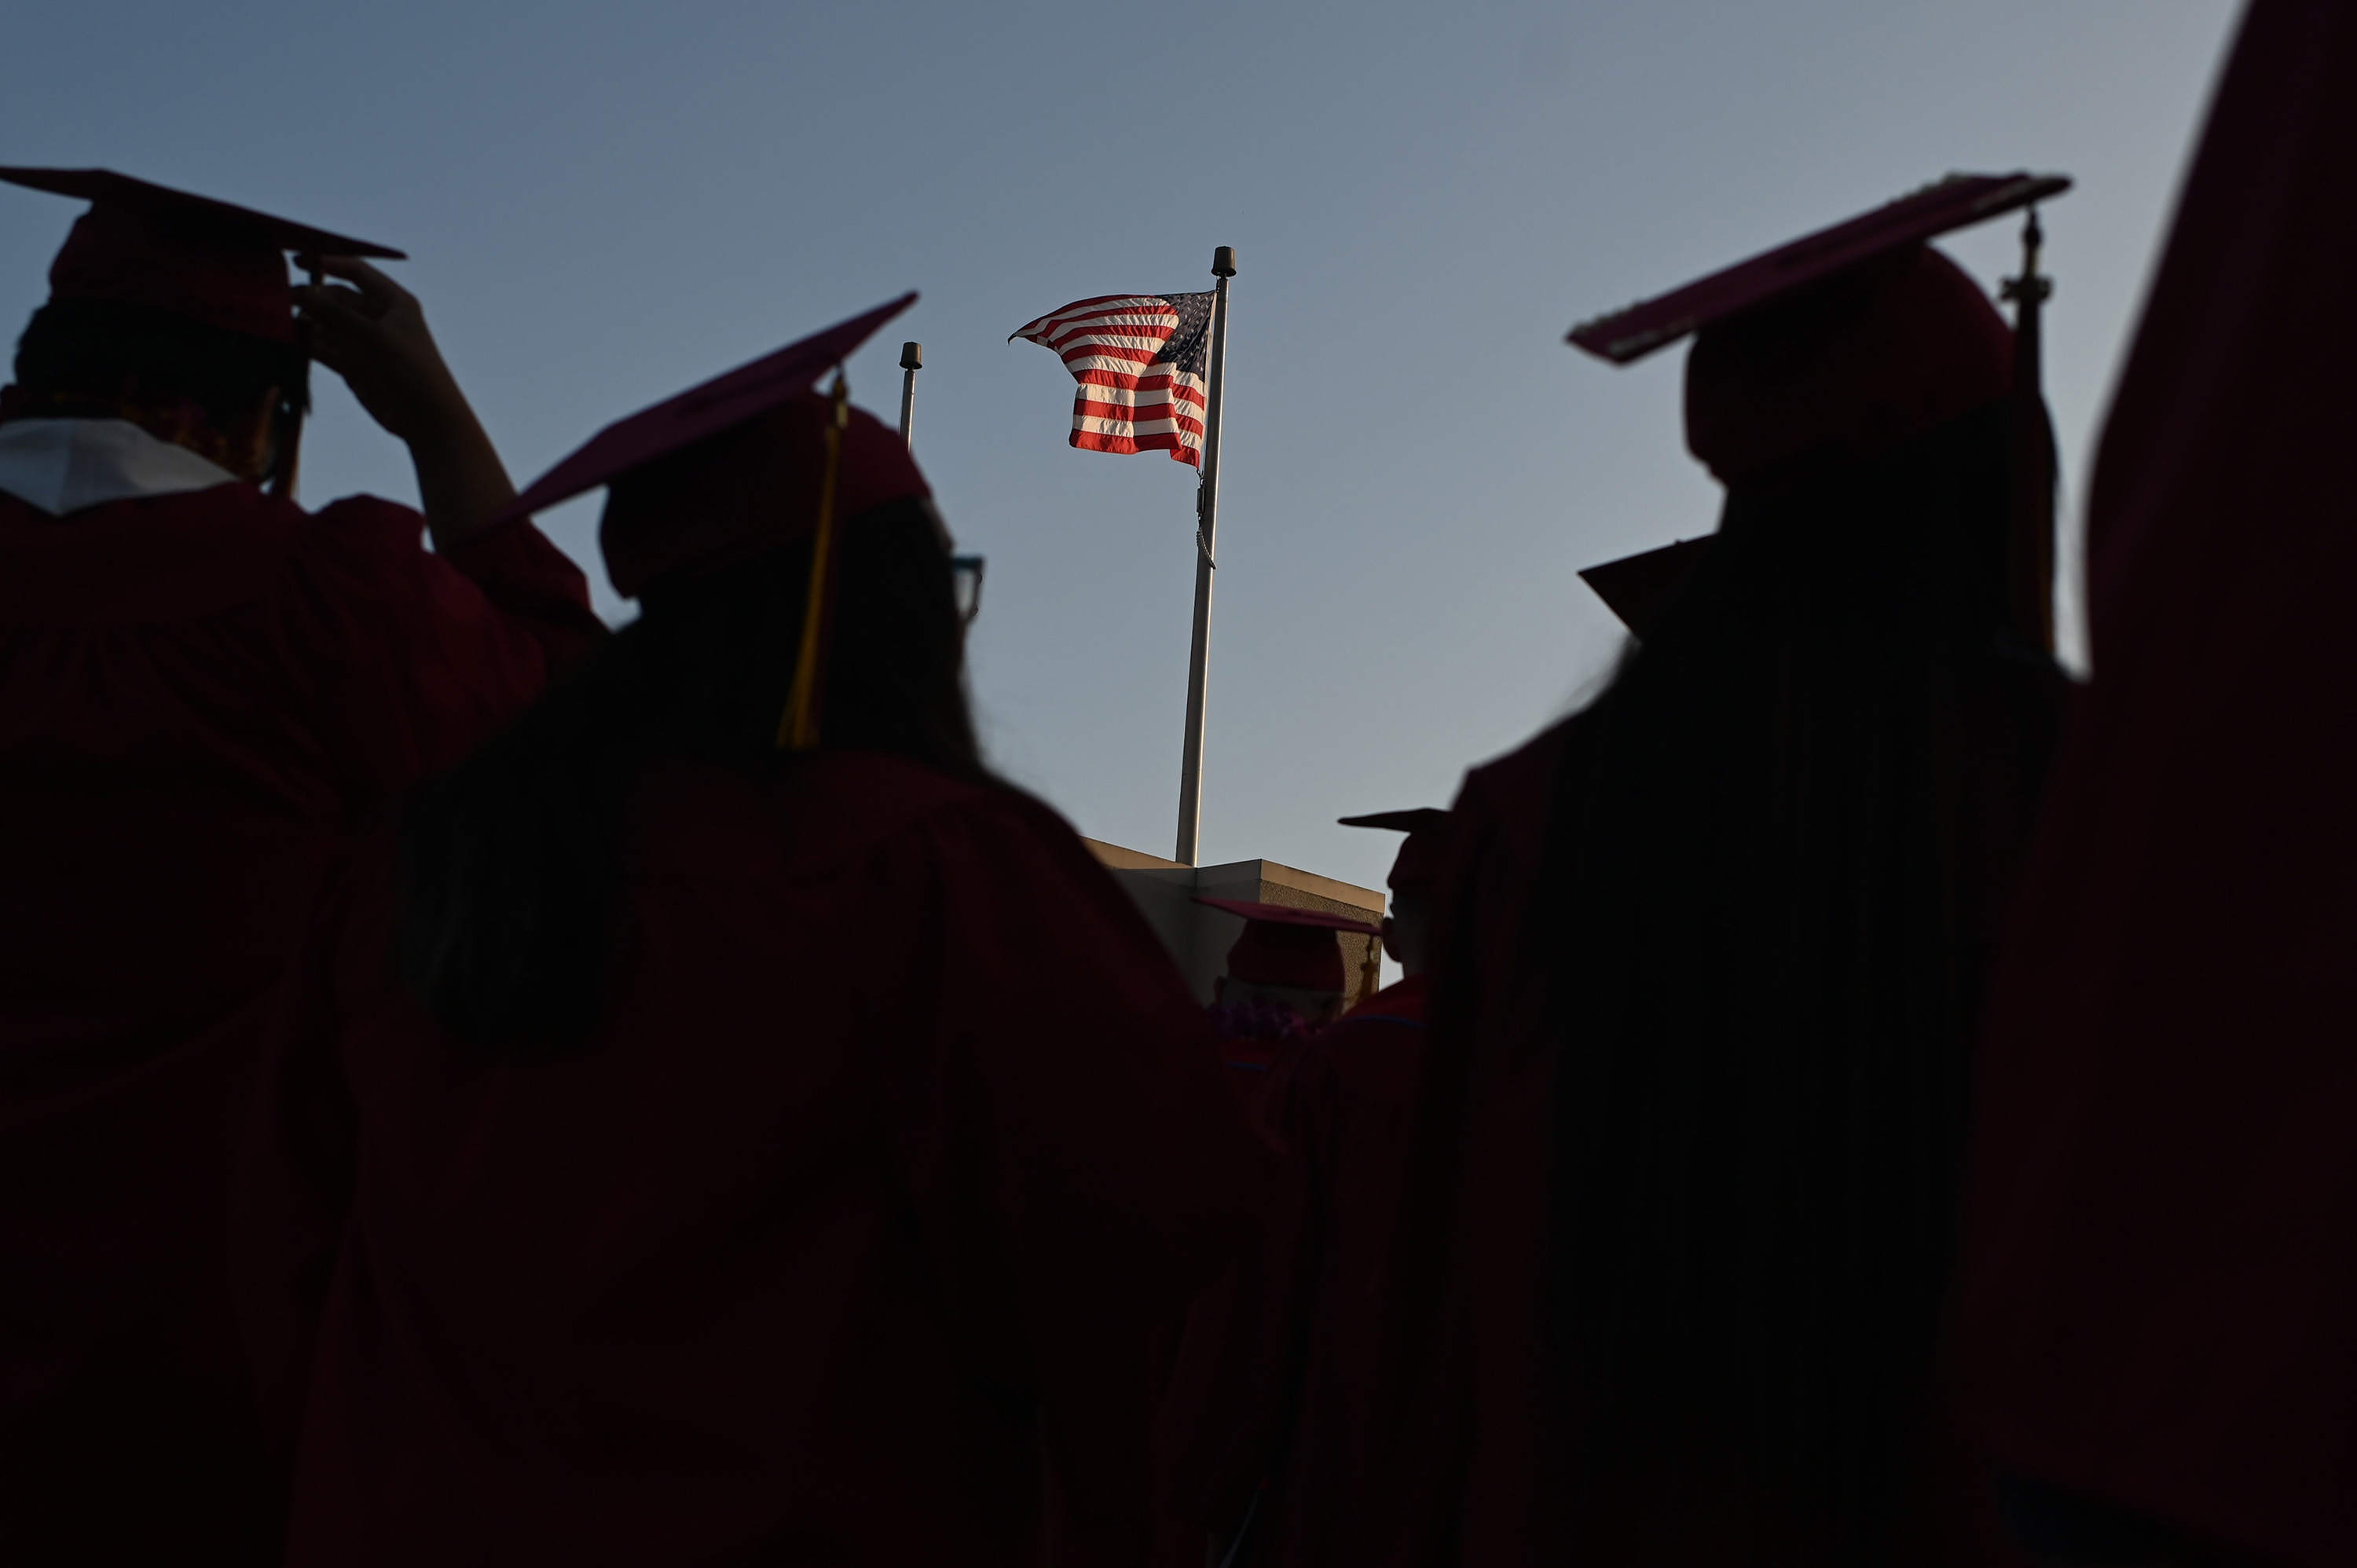 Department of Education has let colleges off the hook for $1 billion owed to taxpayers